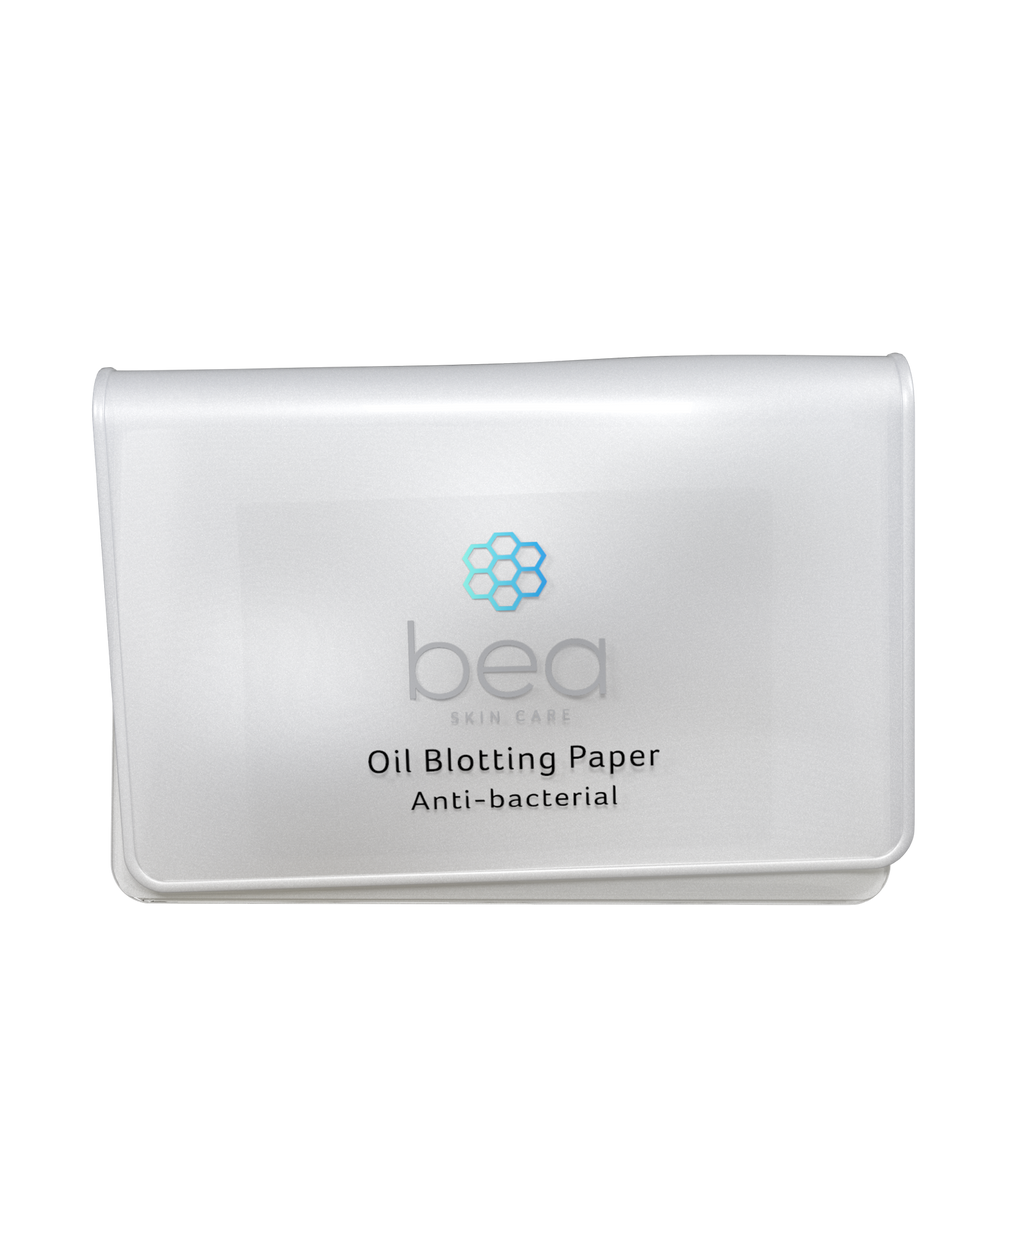 Anti-Bacterial Blotting Paper - 100 Sheets Blotting Papers bea Skin Care